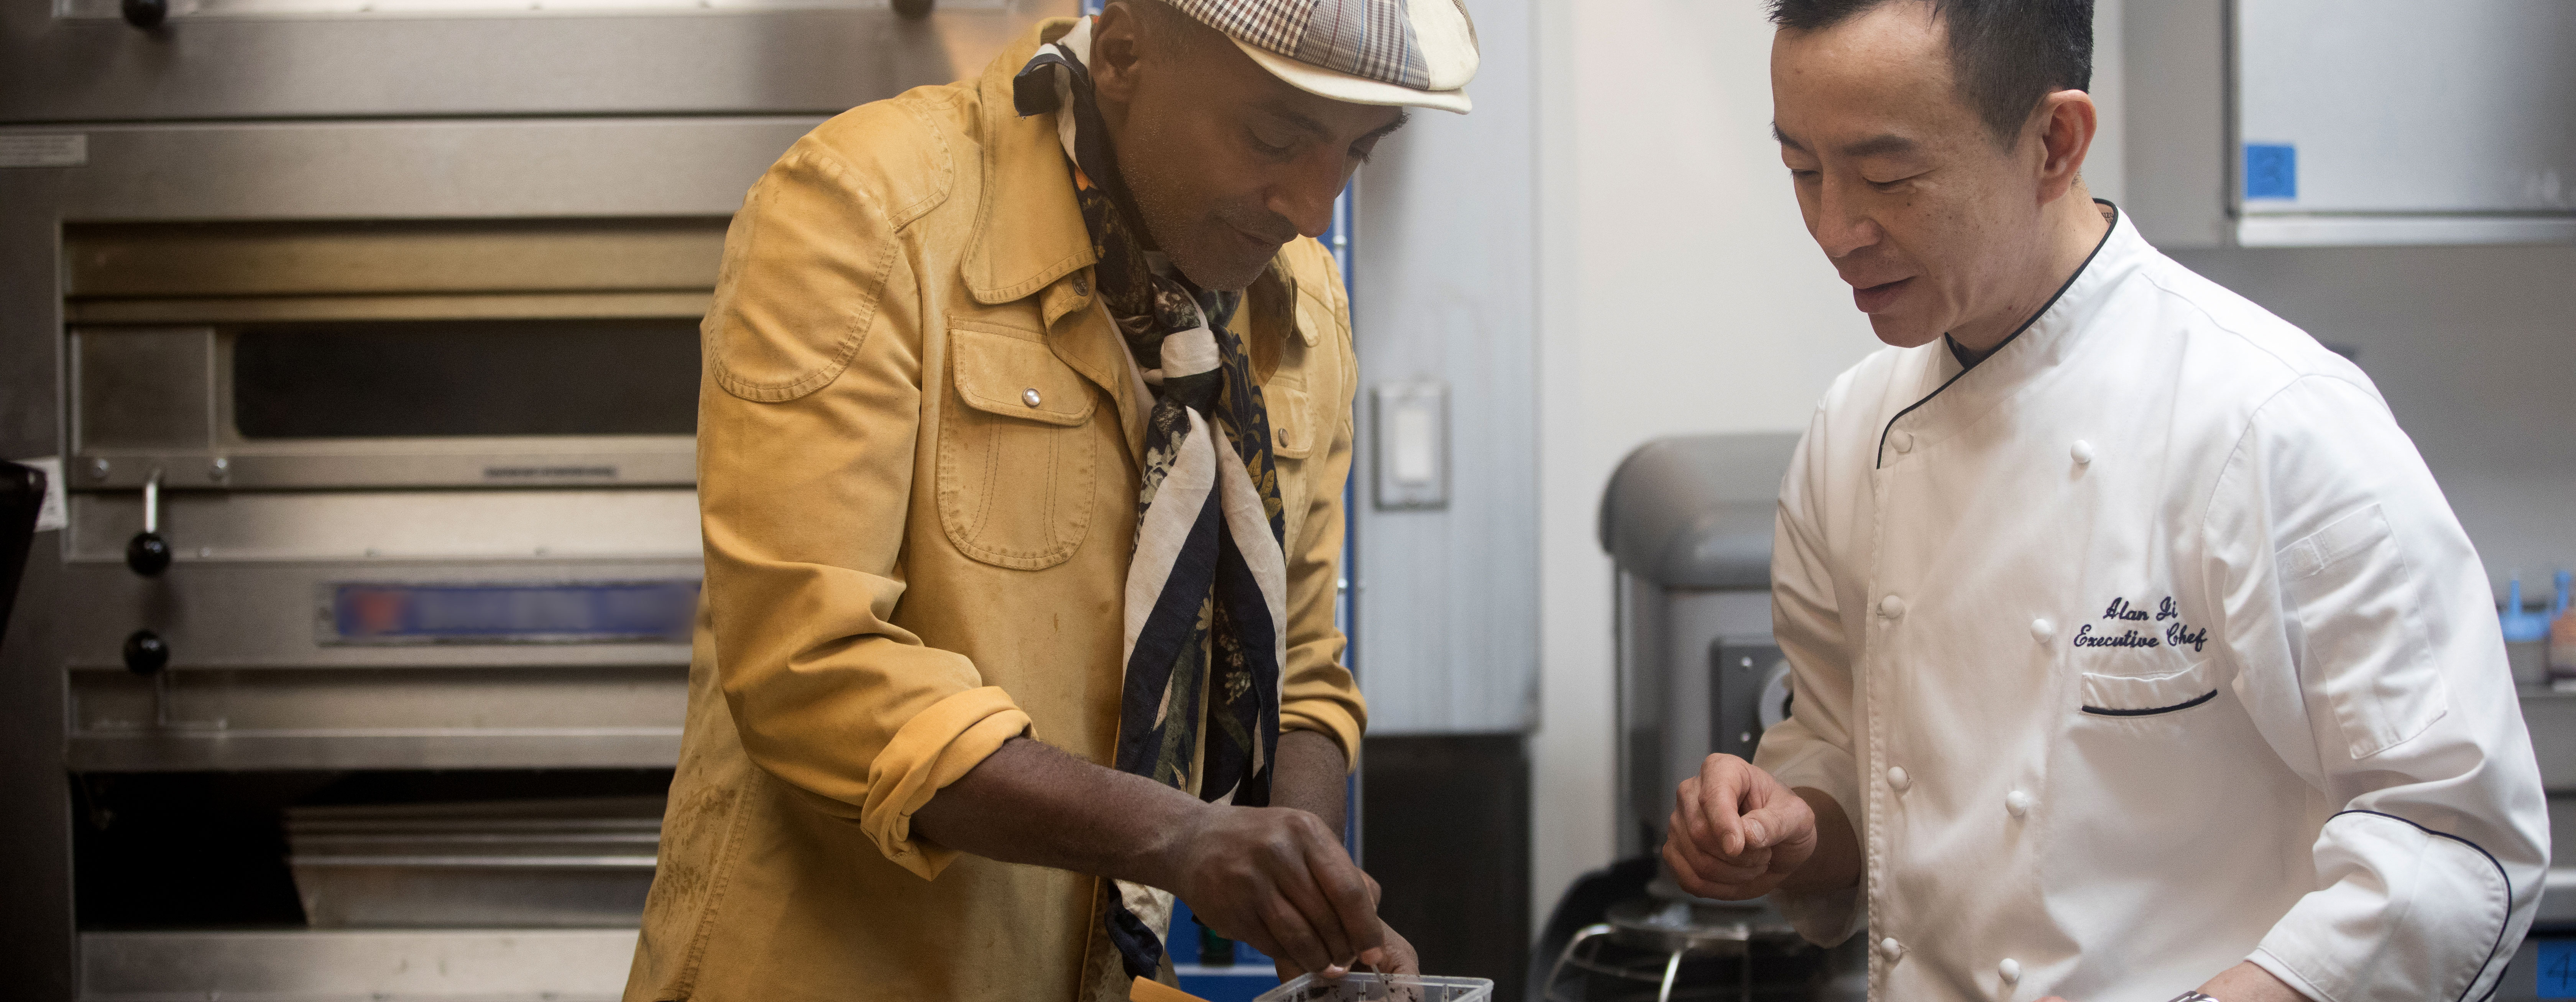 Chef Marcus Samuelsson Highlights Chinese-American Restaurants at a Las Vegas Event